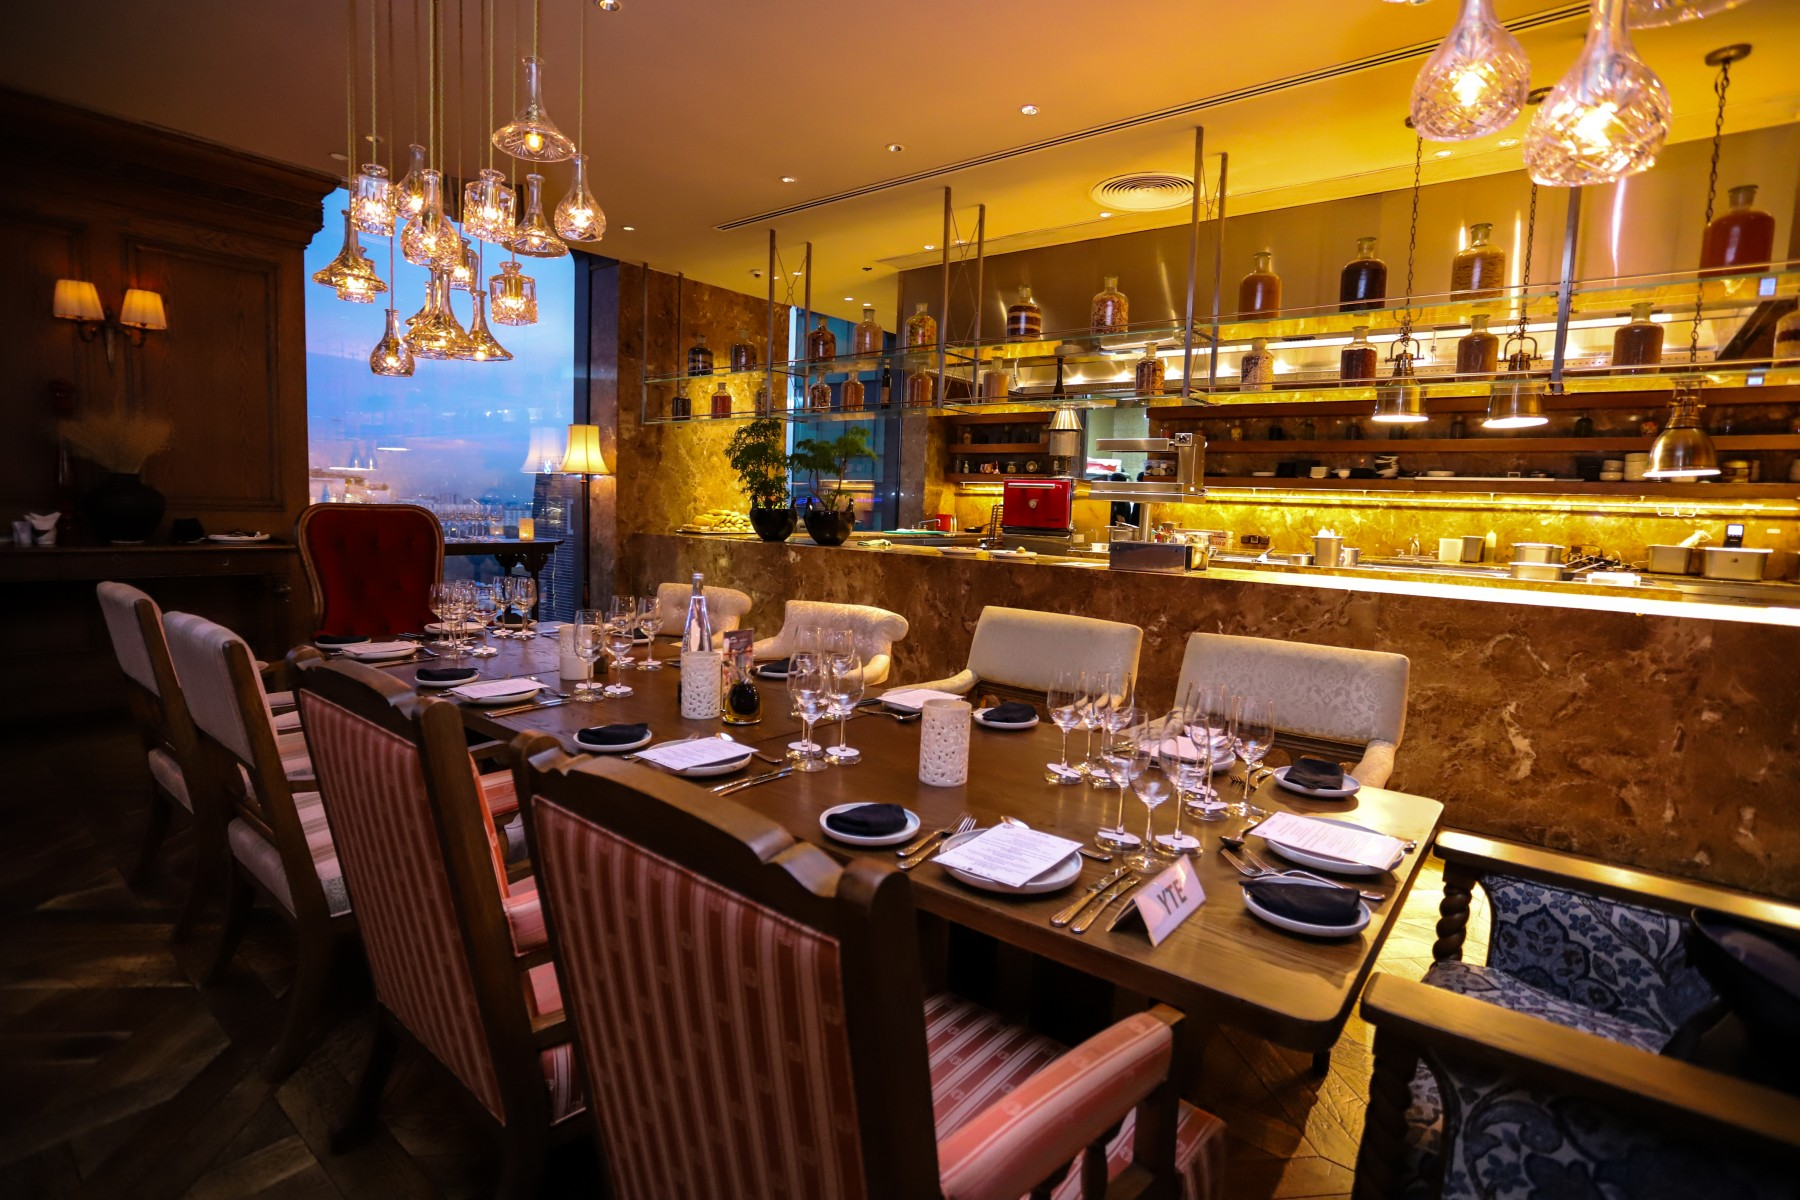 social-club-saigon-crowned-the-best-luxury-boutique-hotel-restaurant-in-asia-by-world-luxury-restaurant-awards-2018